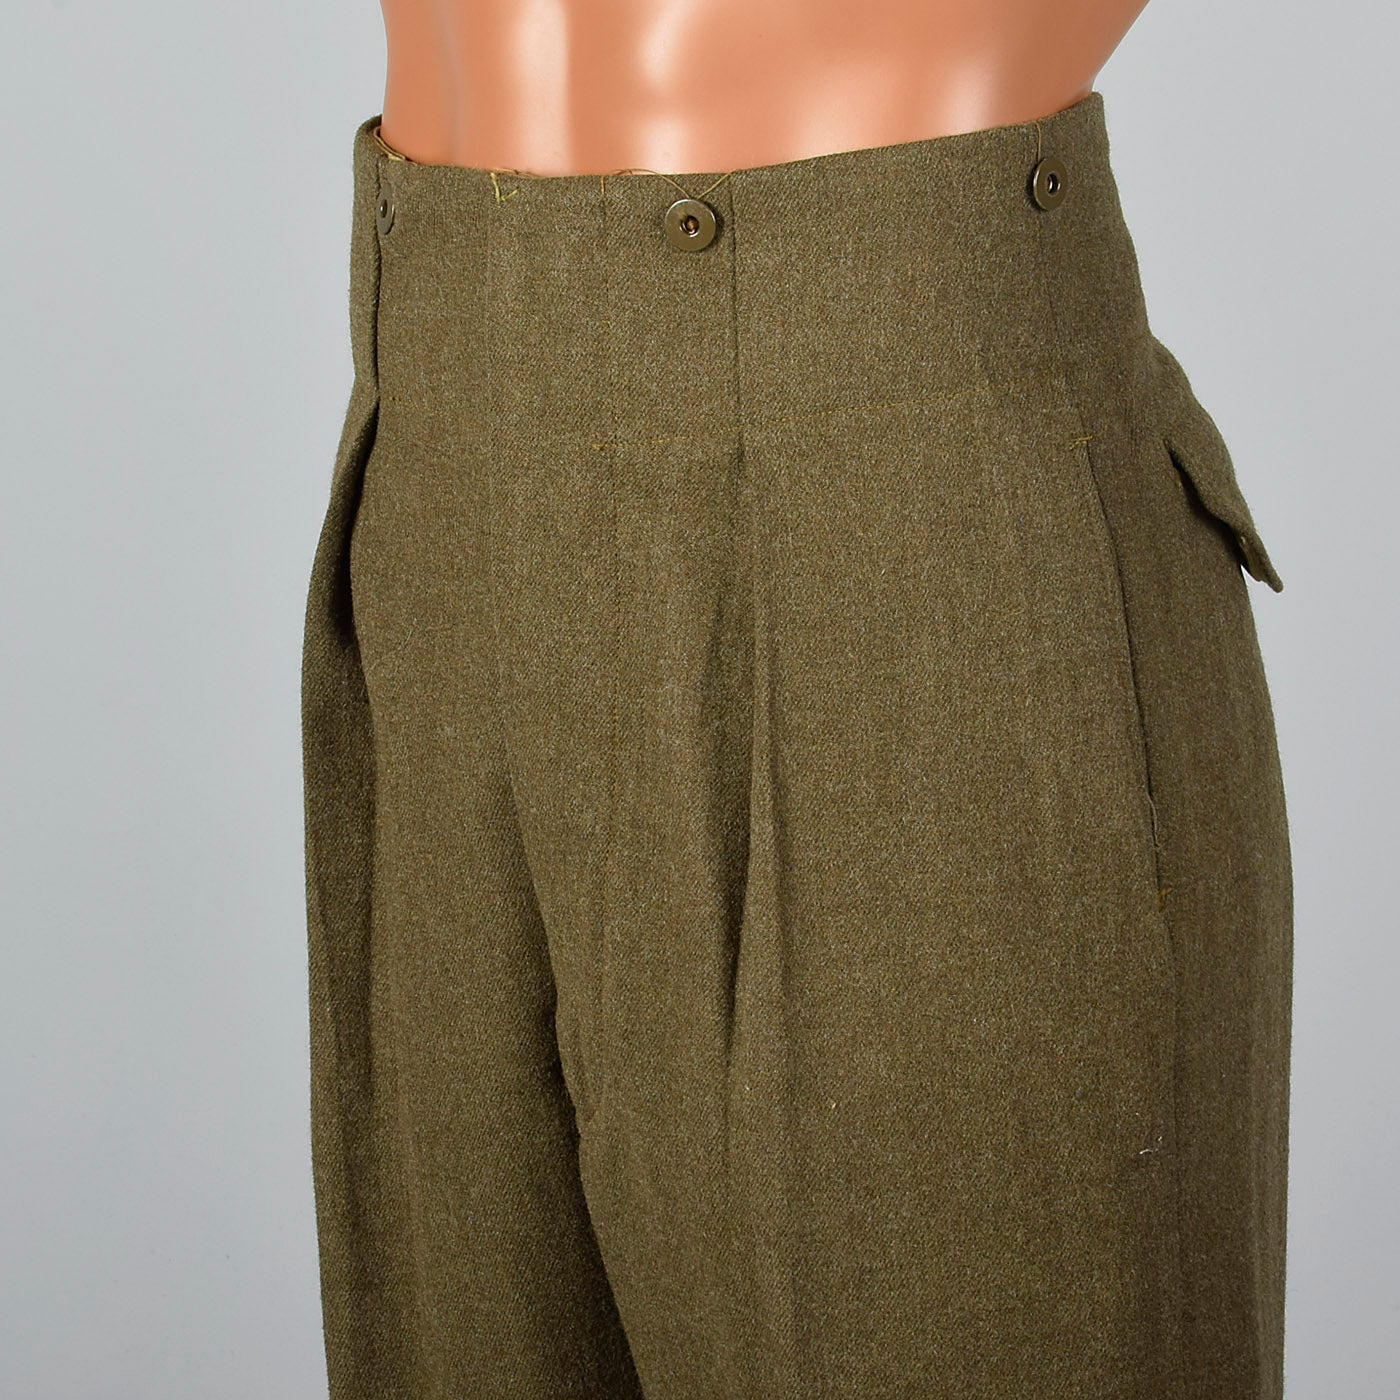 1950s Green Military Pant